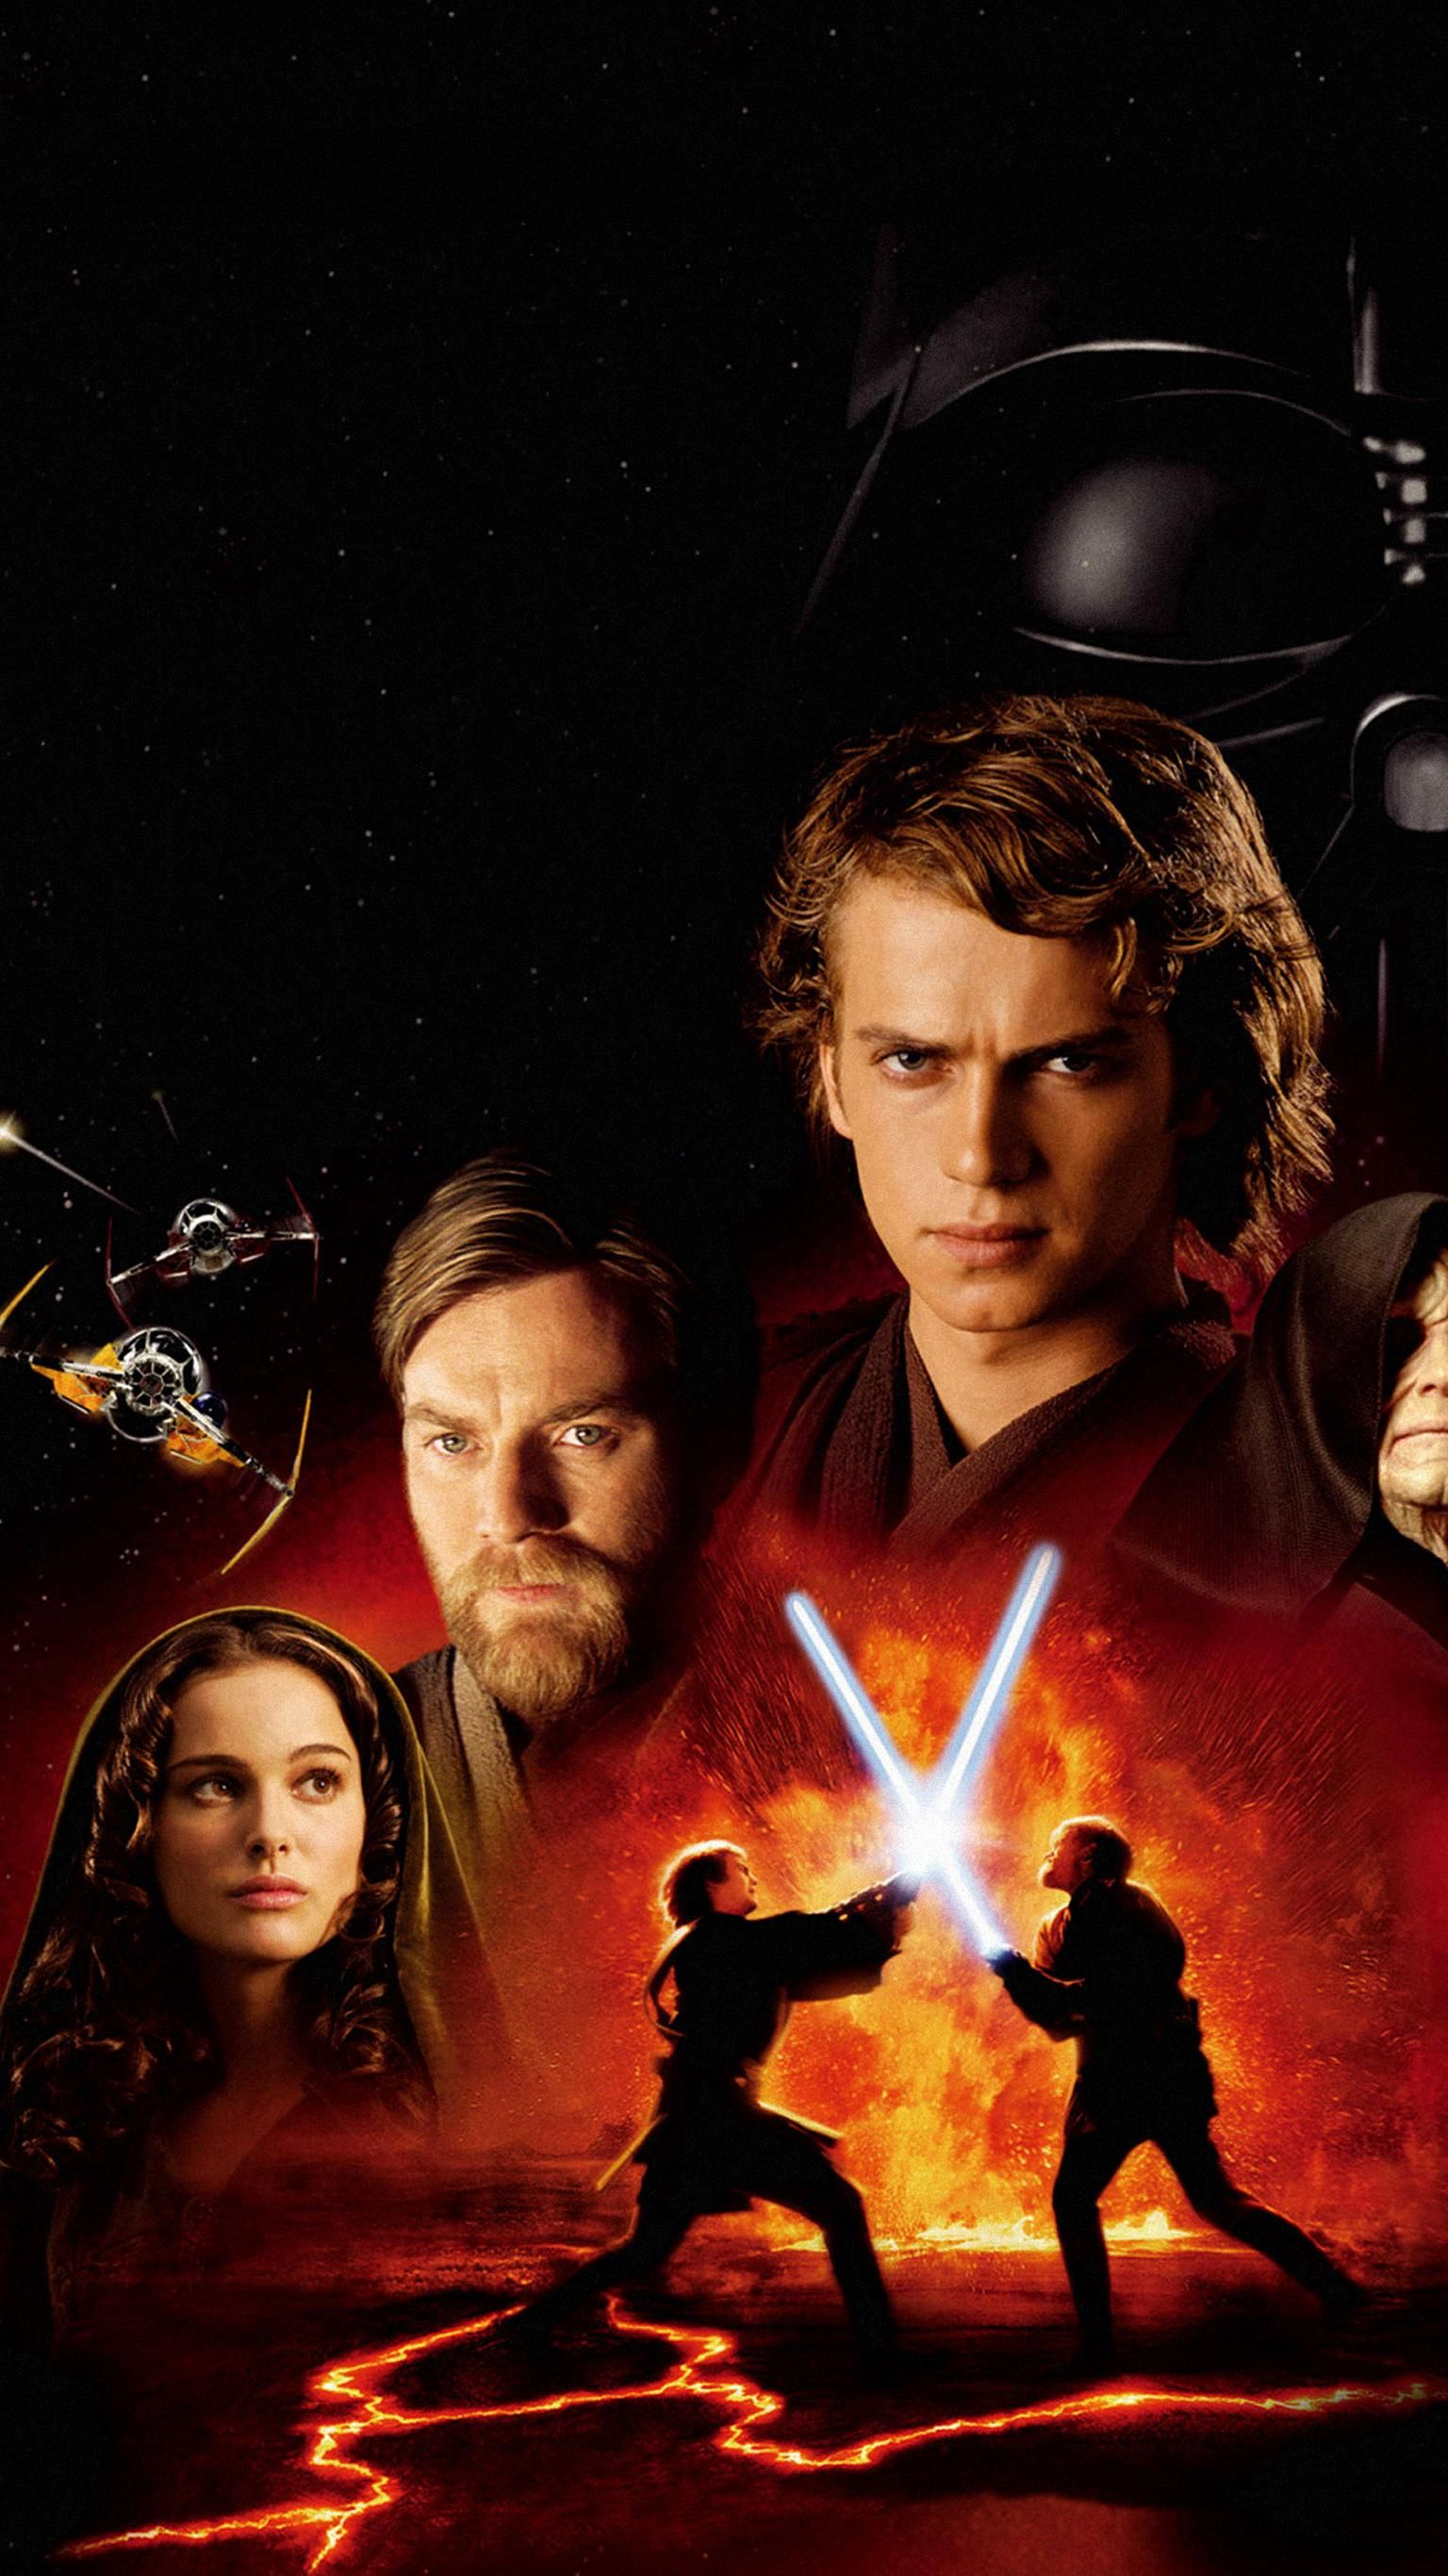 Star Wars Episode Iii Revenge Of The Sith 2005 Phone Wallpaper Moviemania Star Wars Images Star Wars Pictures Star Wars Anakin